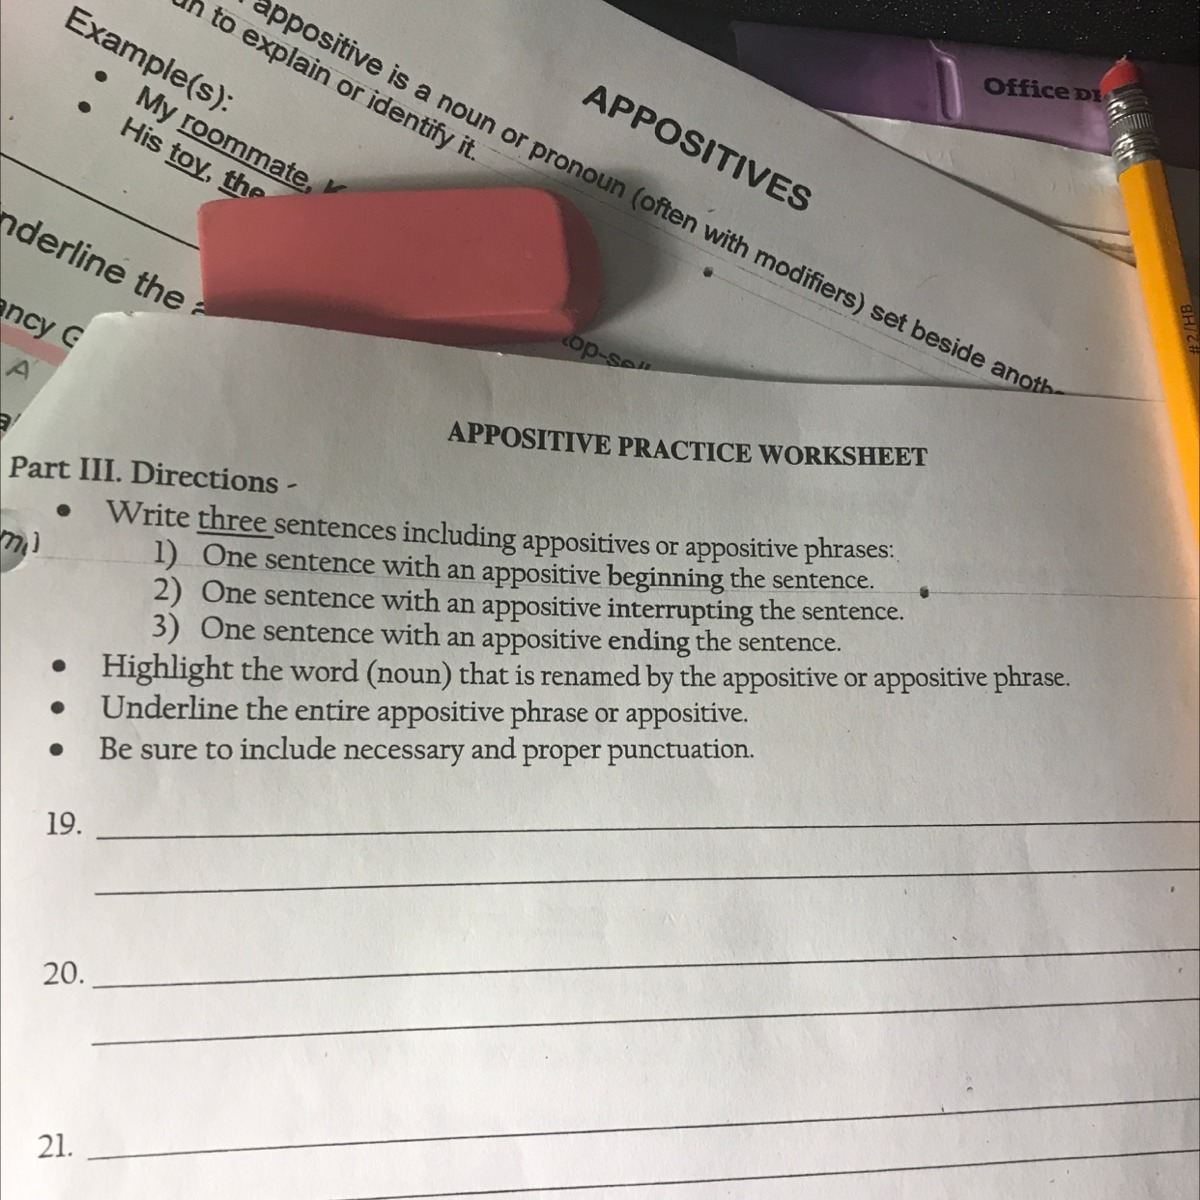 Appositives And Appositive Phrases Worksheet Answers